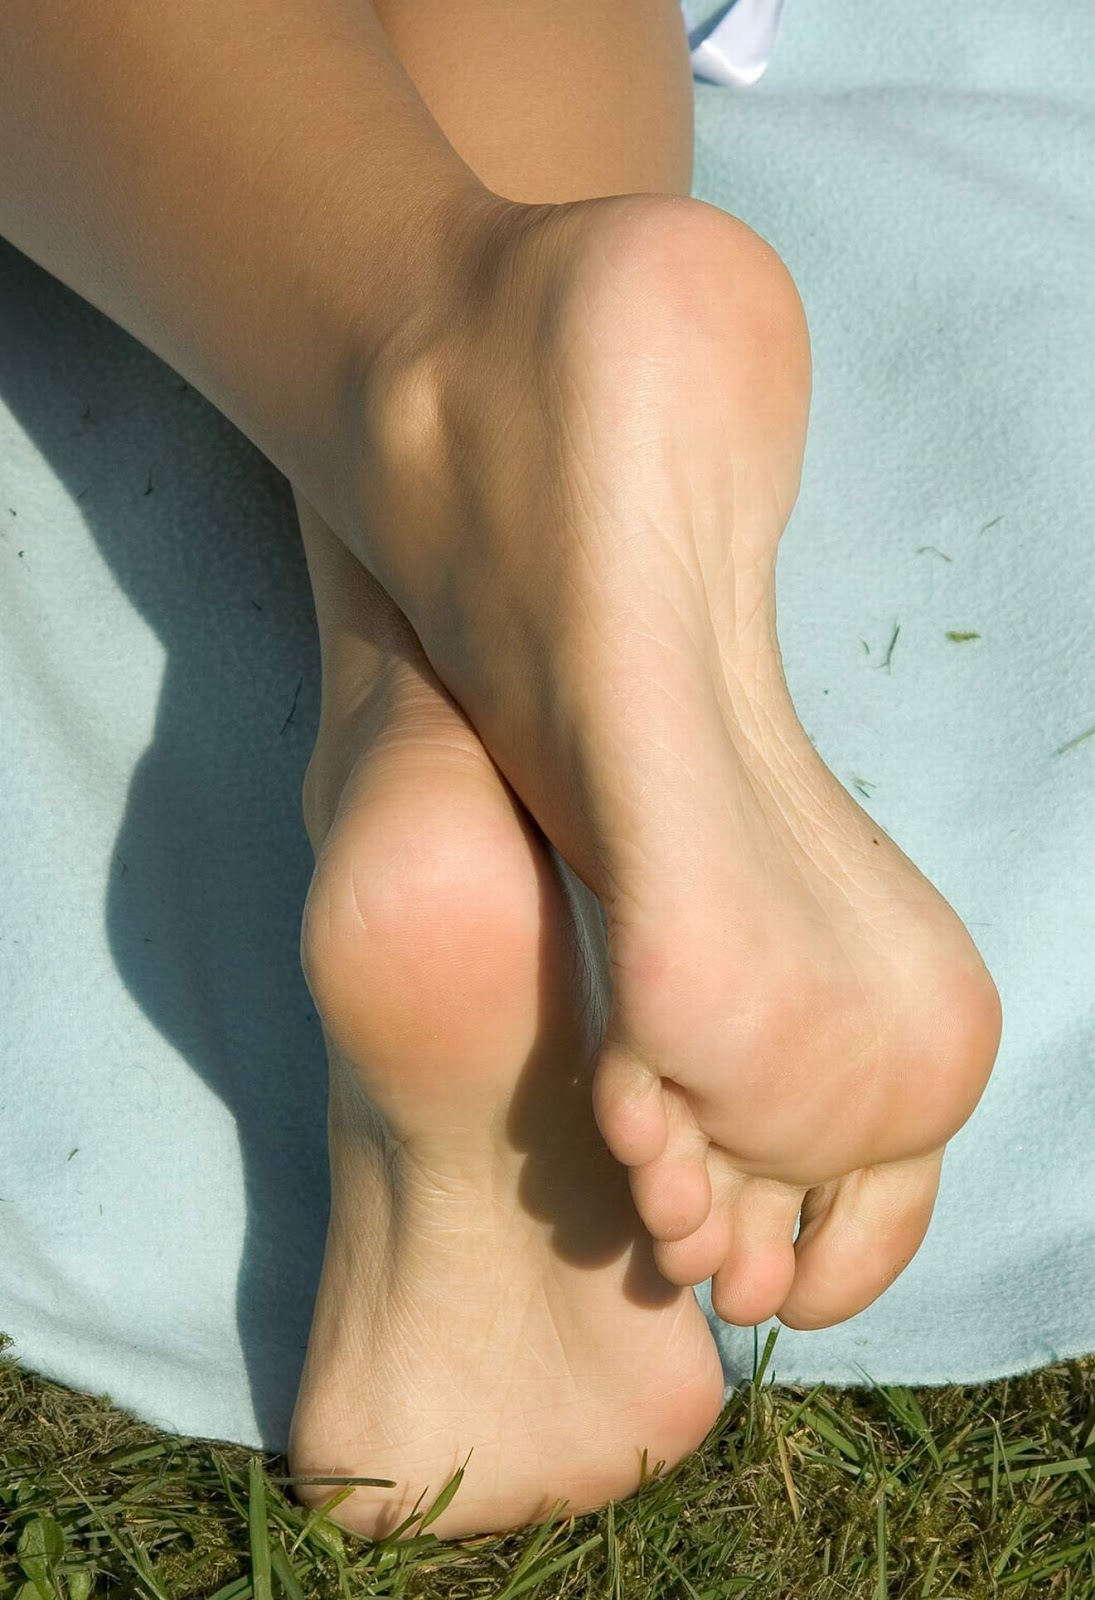 Feet sole fetish